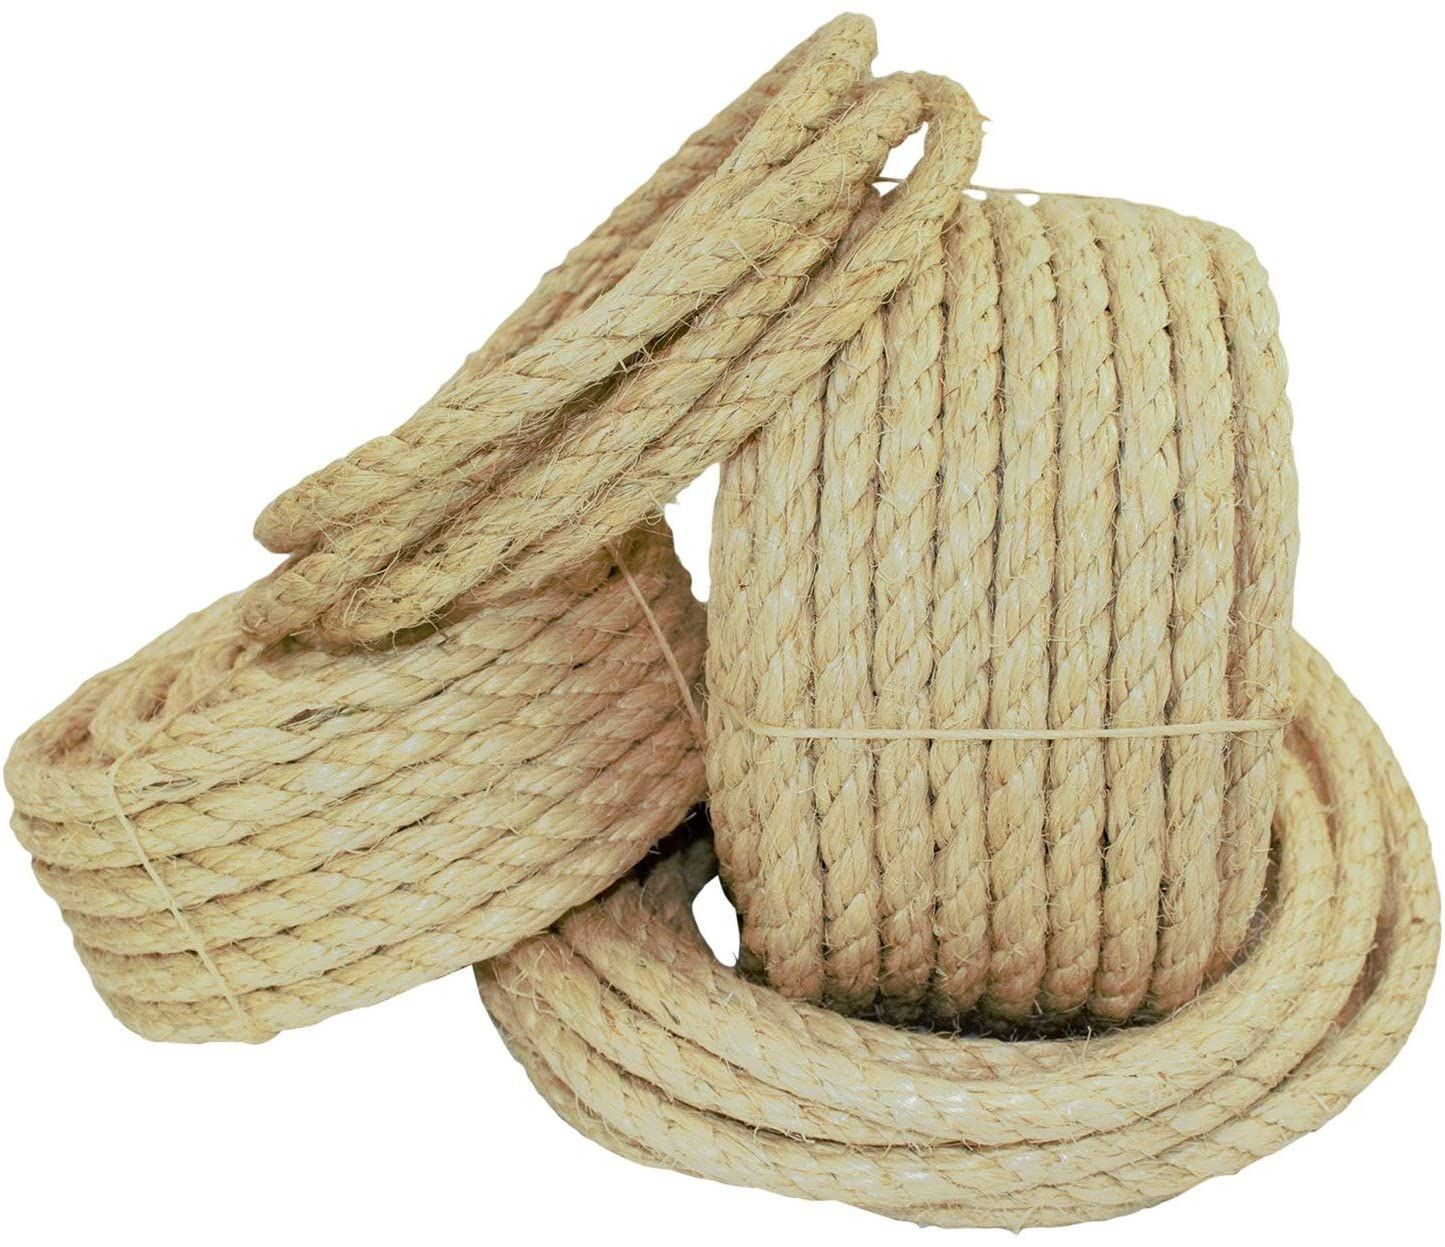 Twisted Sisal Rope 1 2 Inch Sgt Knots All Natural Fibers Moisture Weather Resistant Marine Decor Projects Cat Scra In 2020 Sisal Rope Natural Fibers Sisal